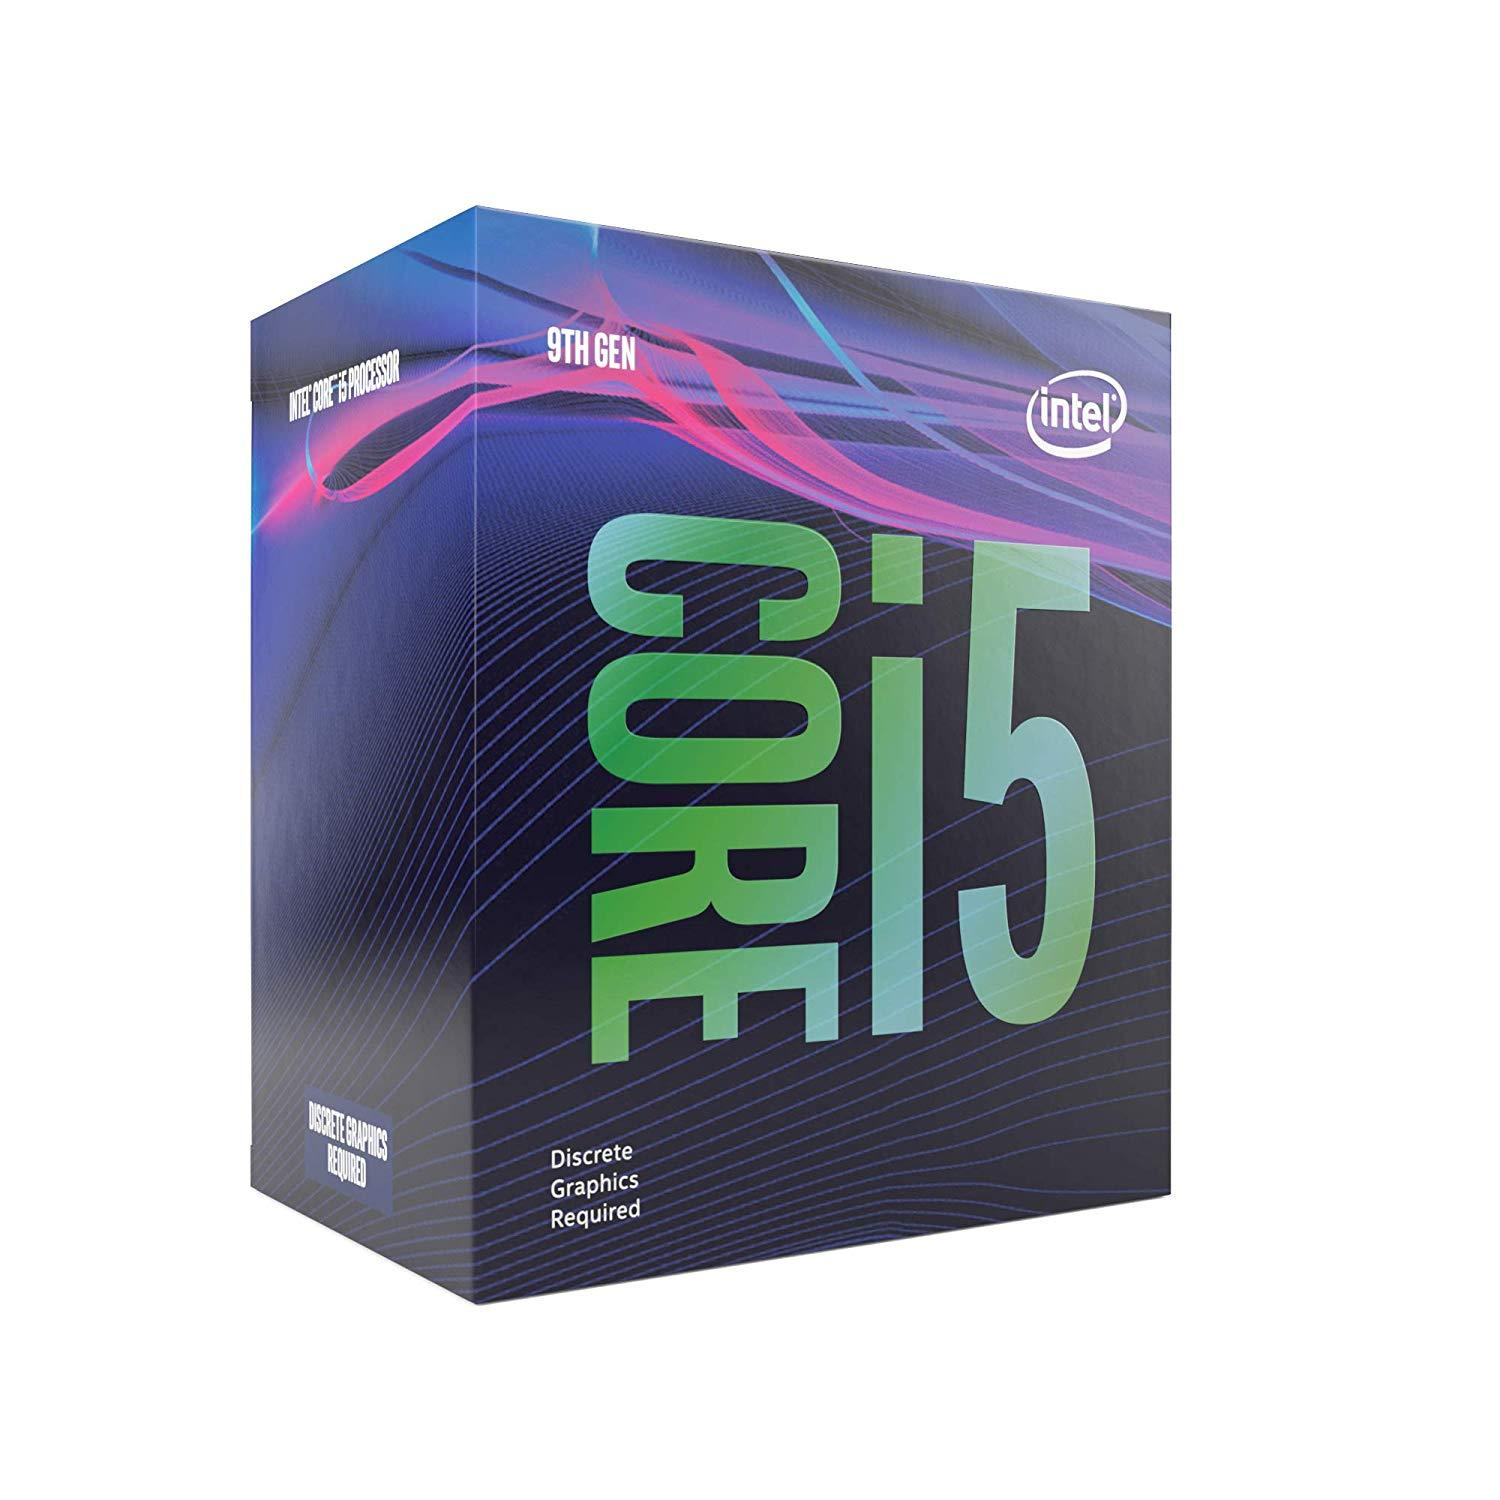 Intel Core i5-9400F, 6 Core, 4.10Ghz, LGA1151 CPU